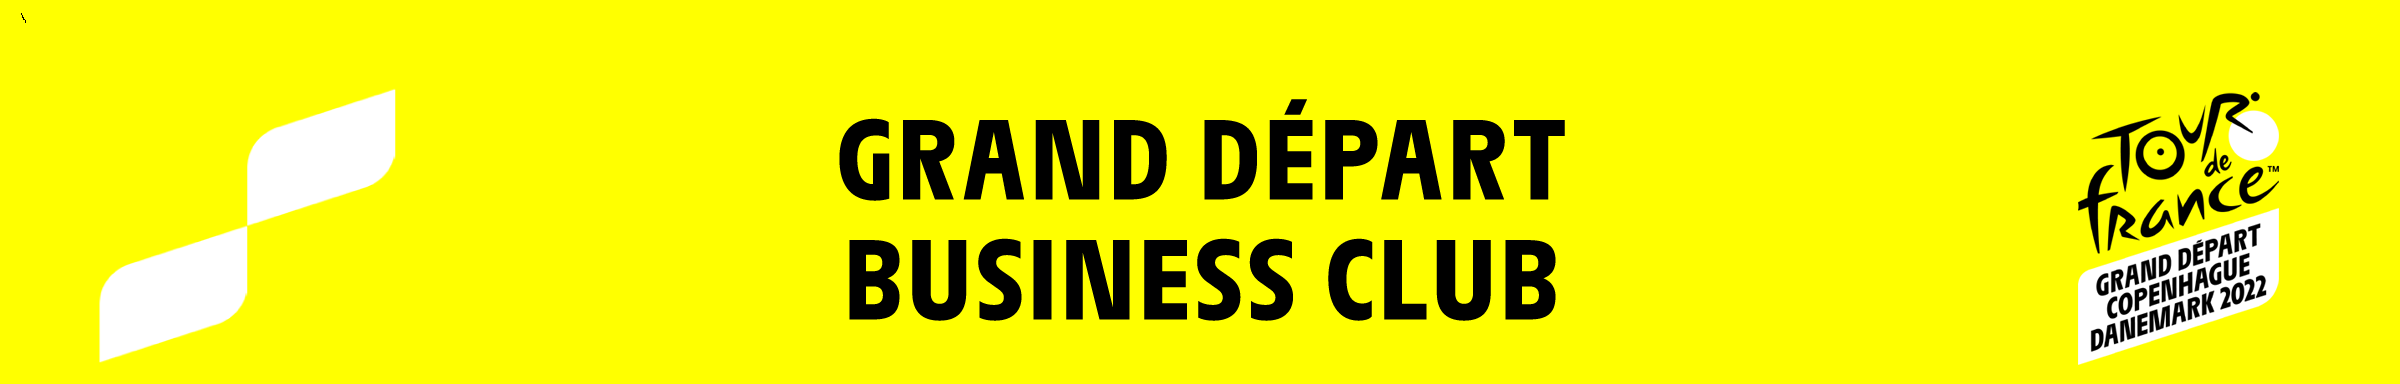 2022 - GRAND DÉPART BUSINESS CLUB